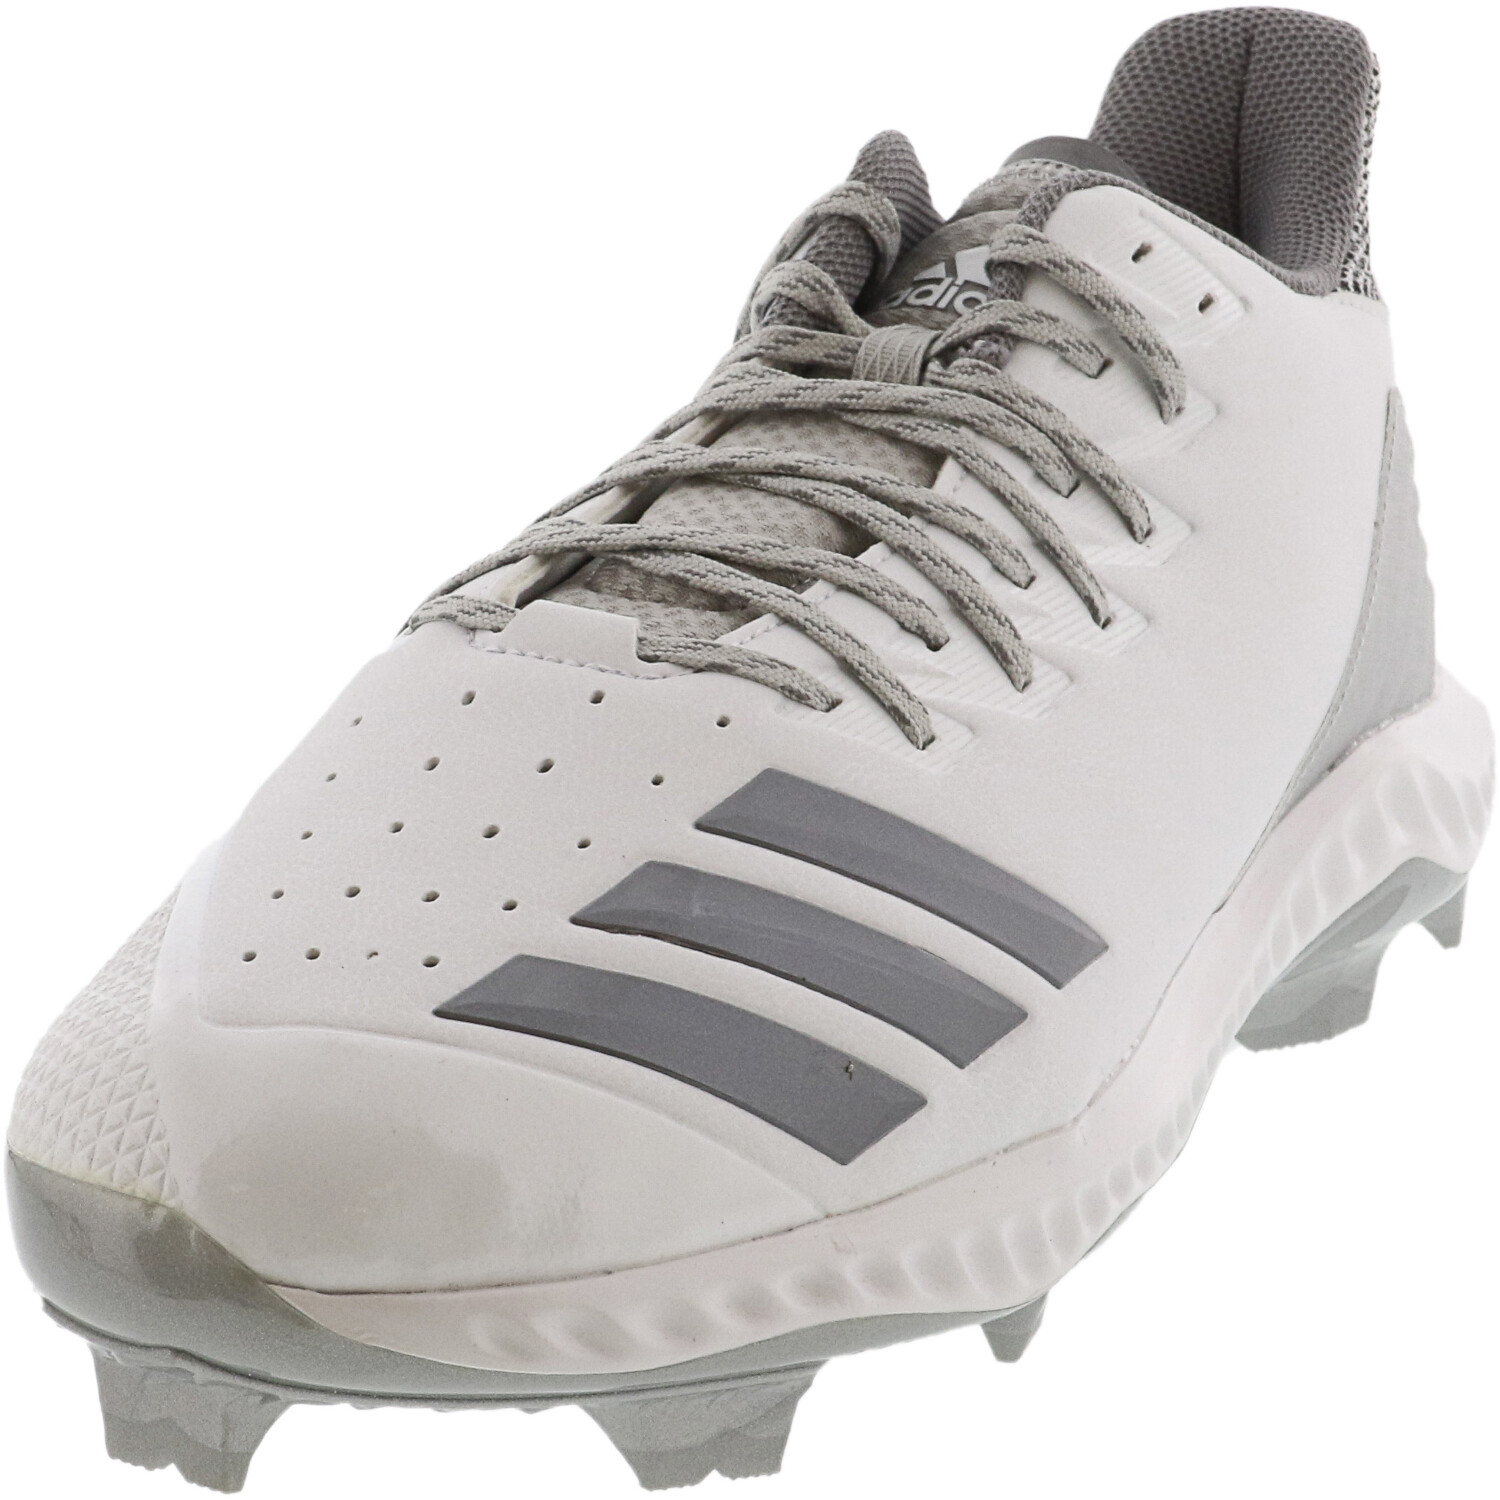 Adidas Men's Icon Bounce Tpu Footwear White / Grey Three Two Low Top Leather Baseball - 14M